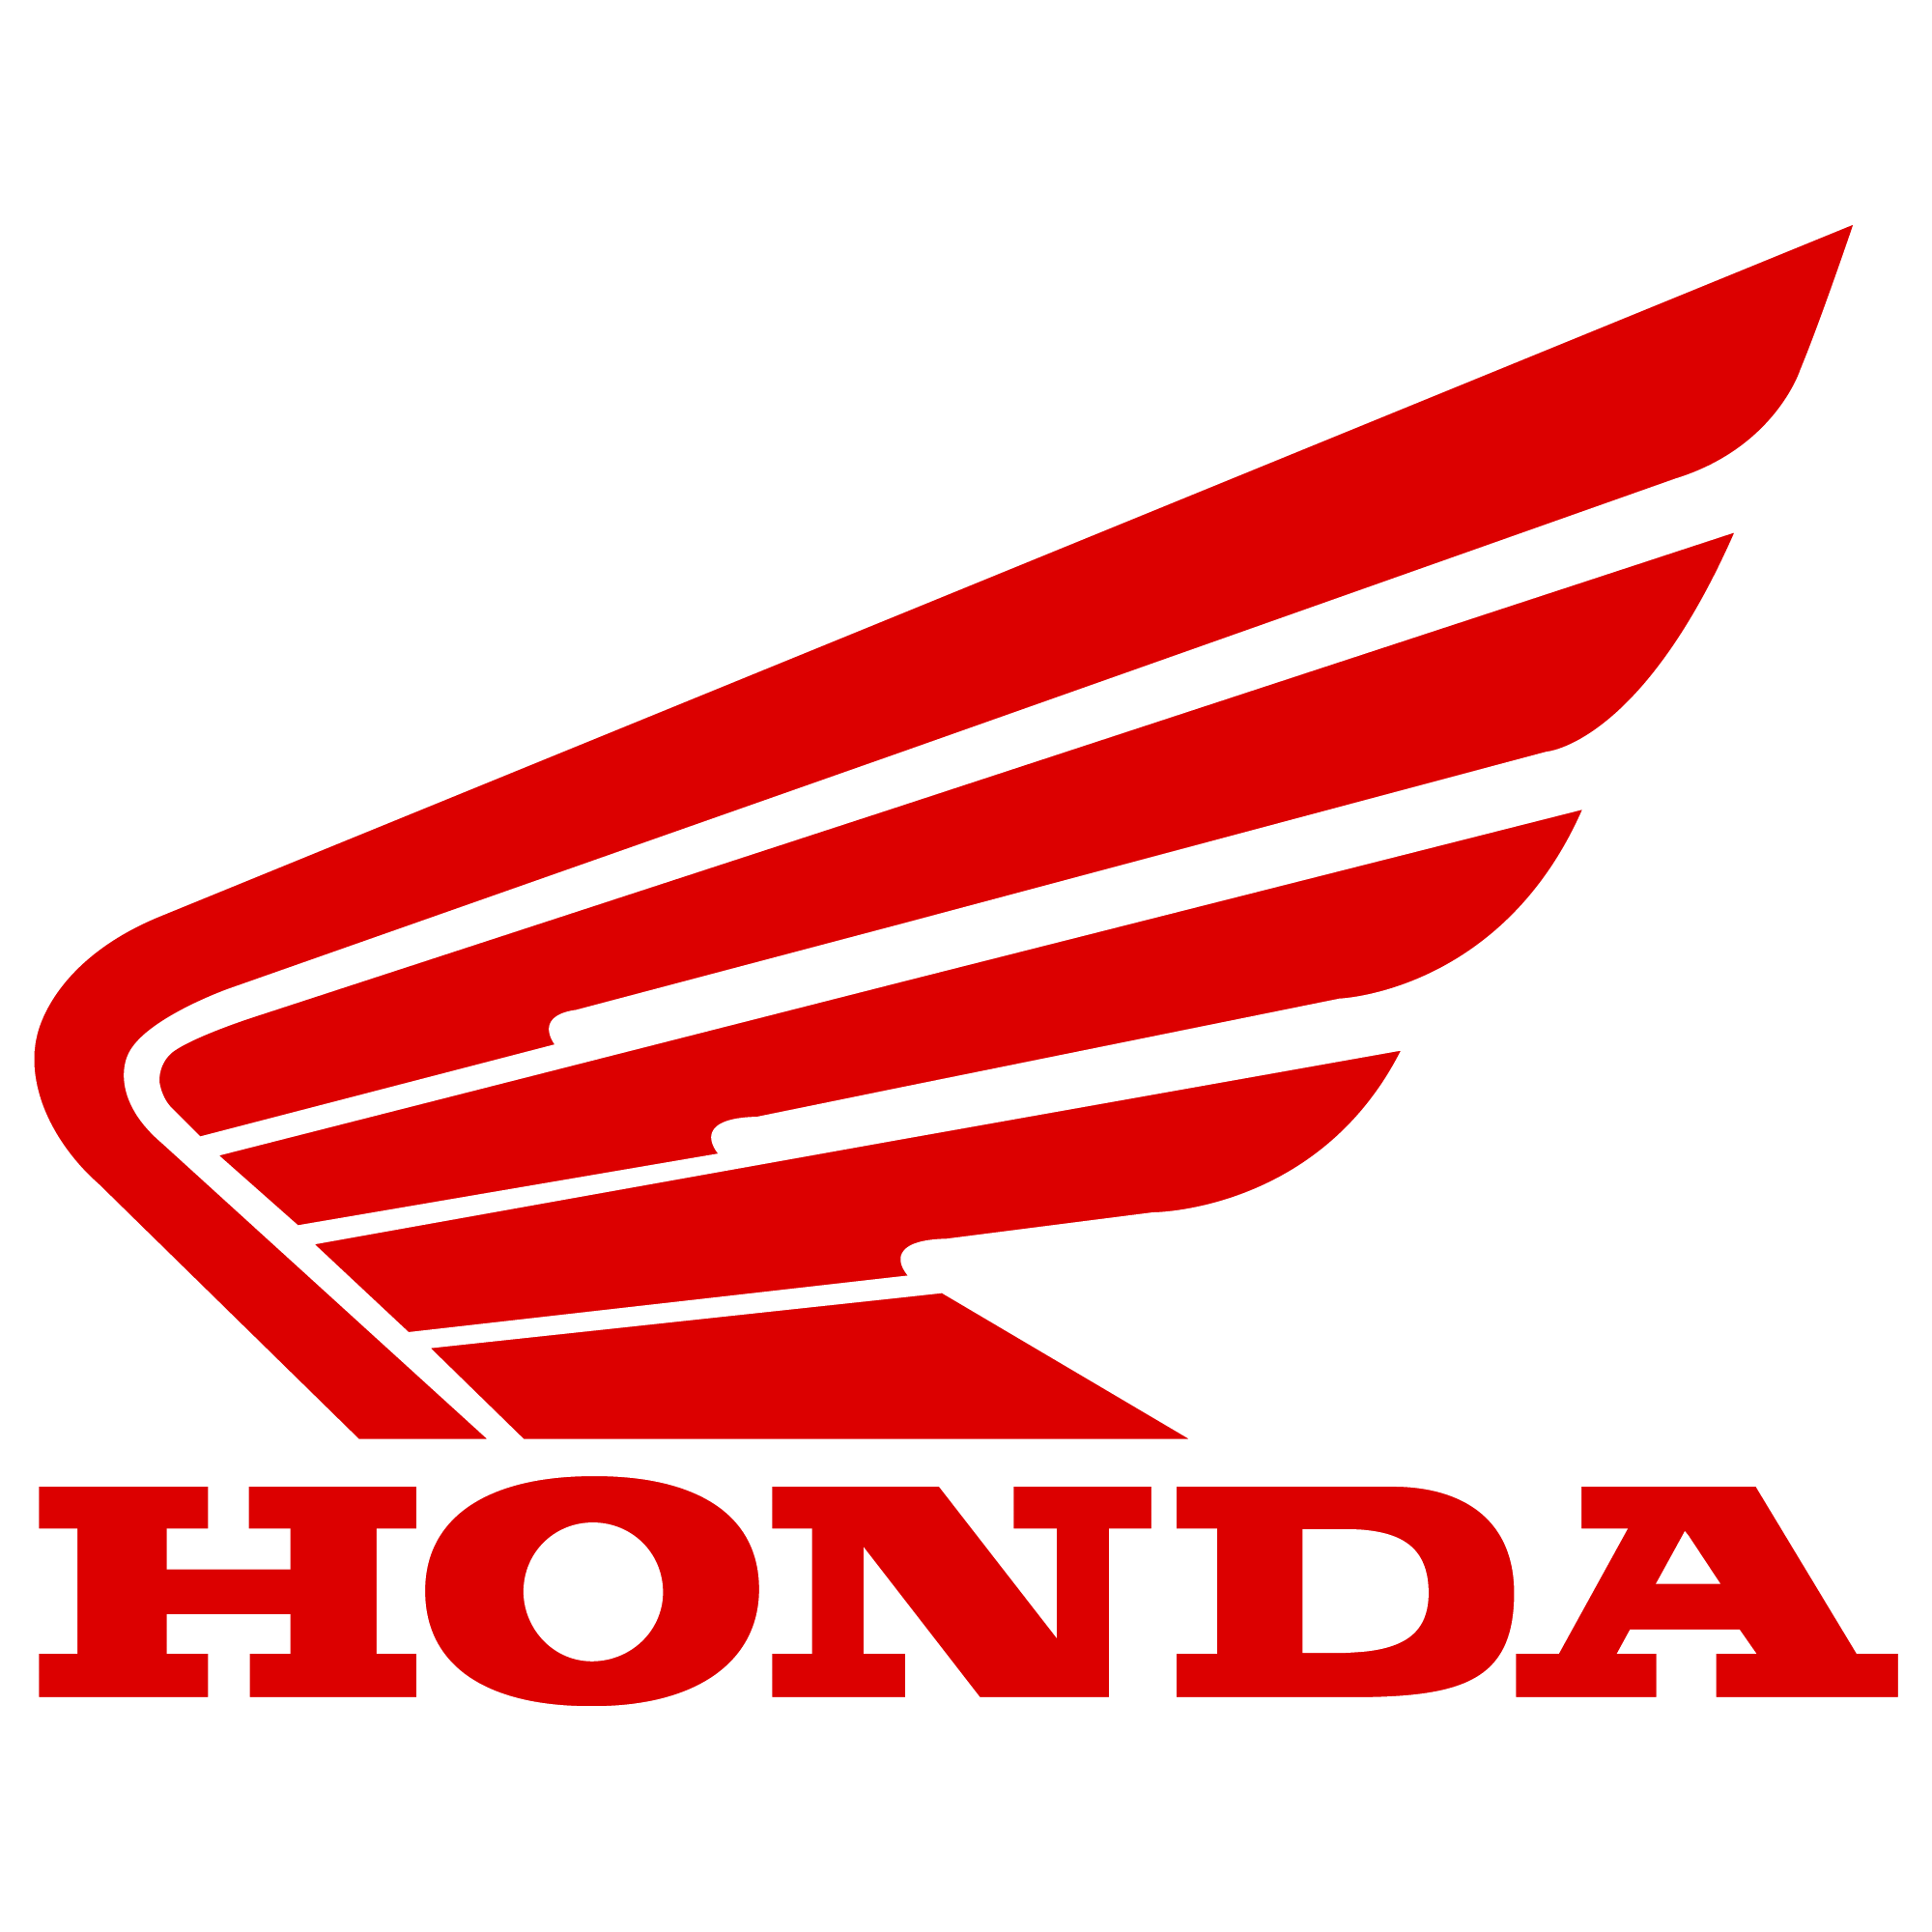 Pictures of honda logo